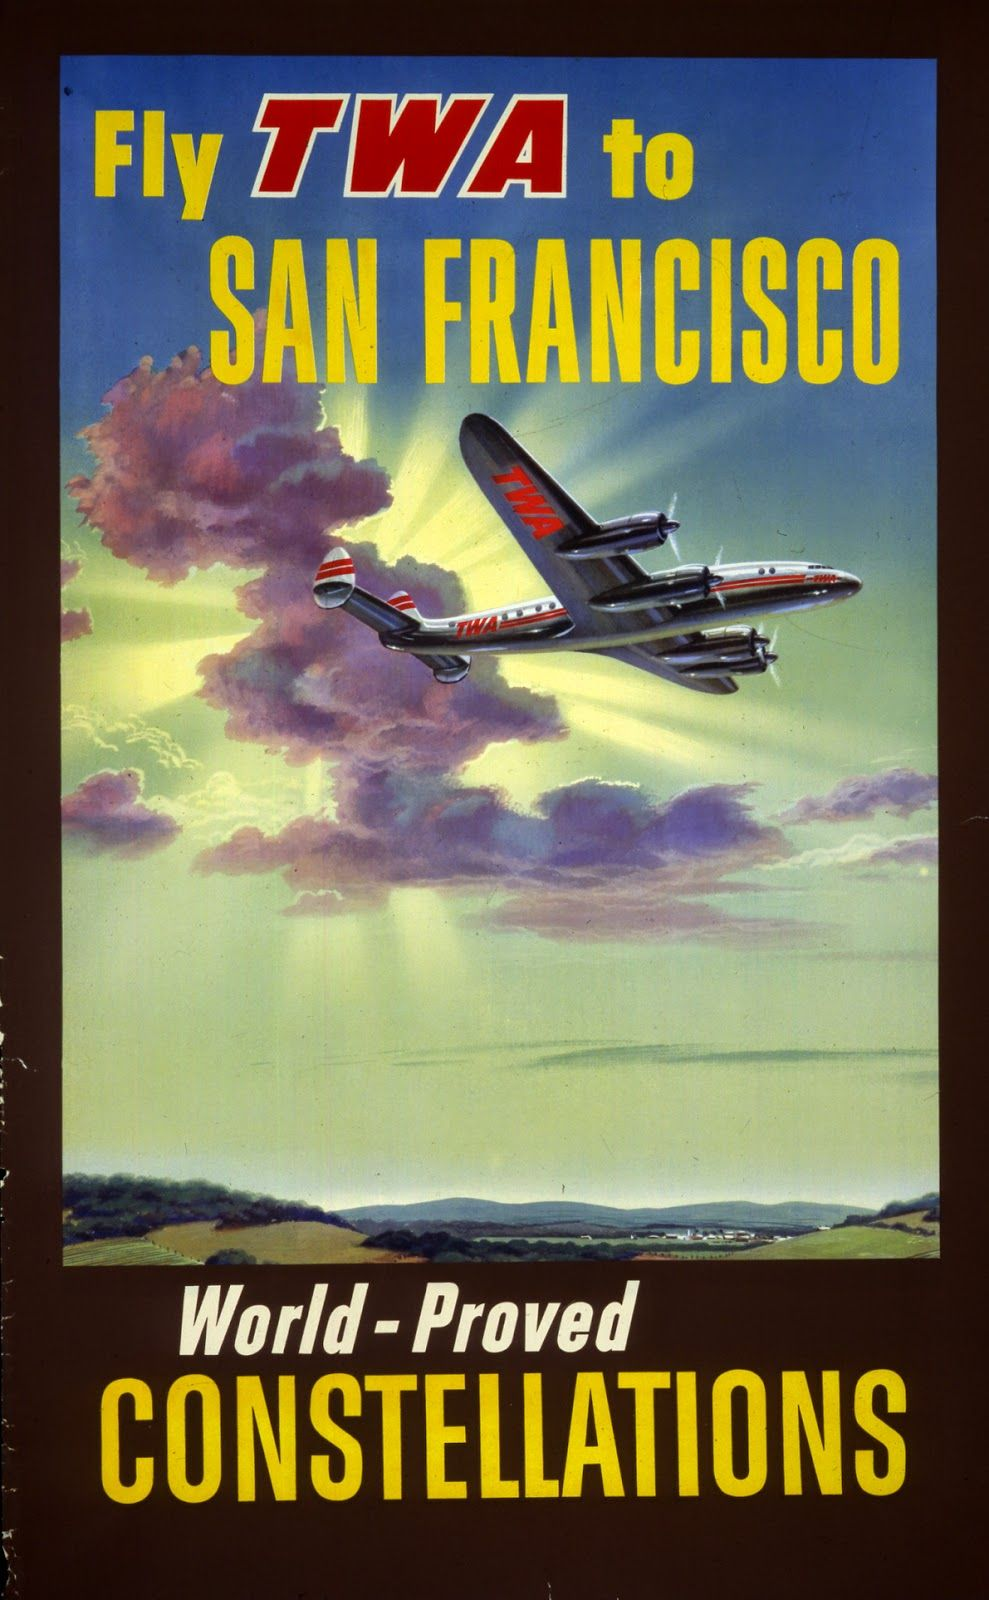 1957 San Francisco. TWA Airlines. ❣Julianne McPeters❣ no pin limits